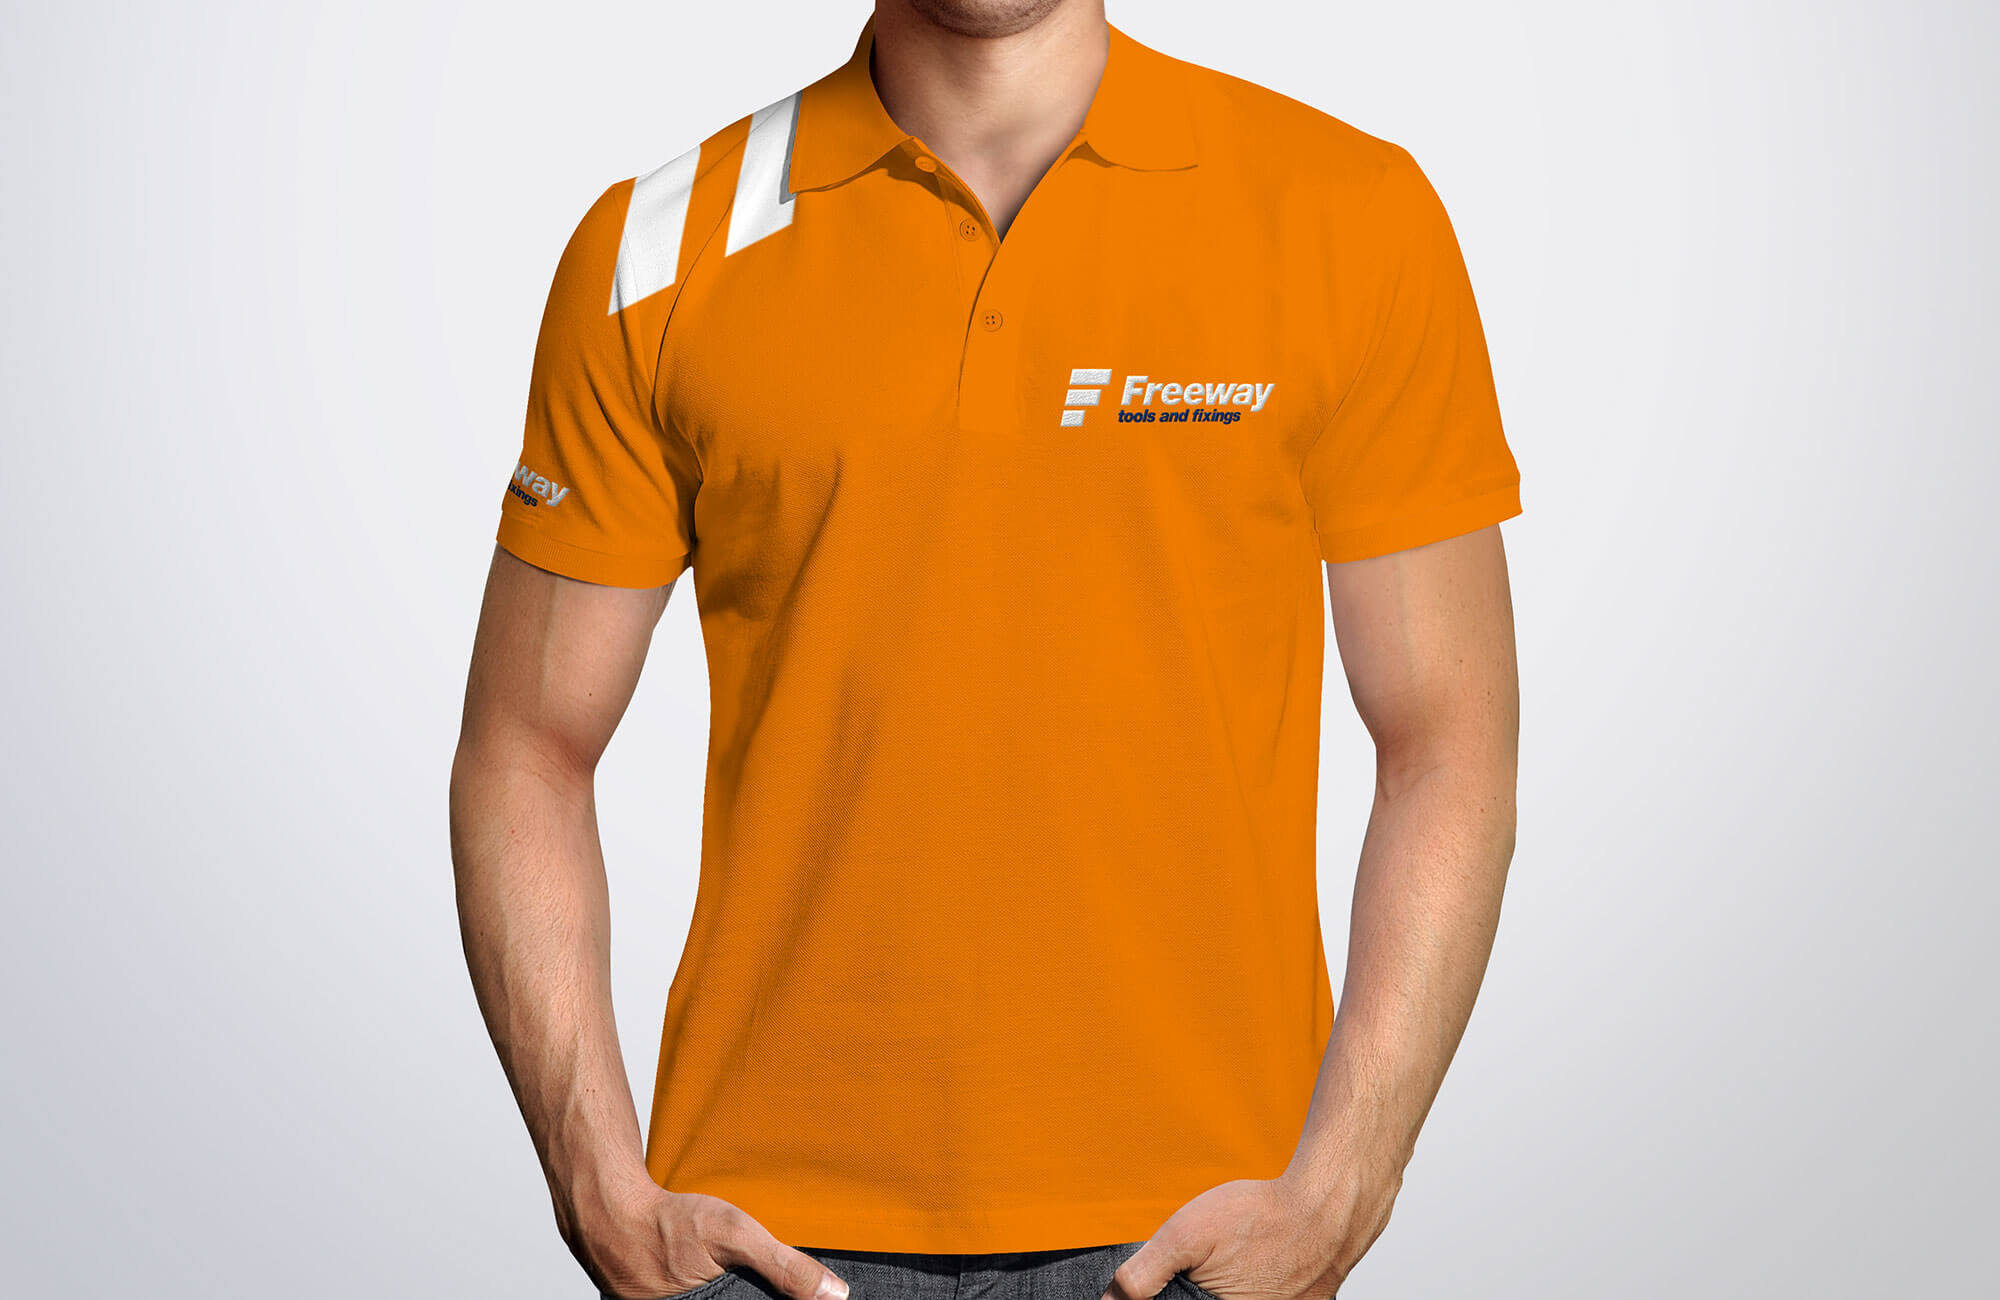 Freeway Branded Polo Shirt Design Concept